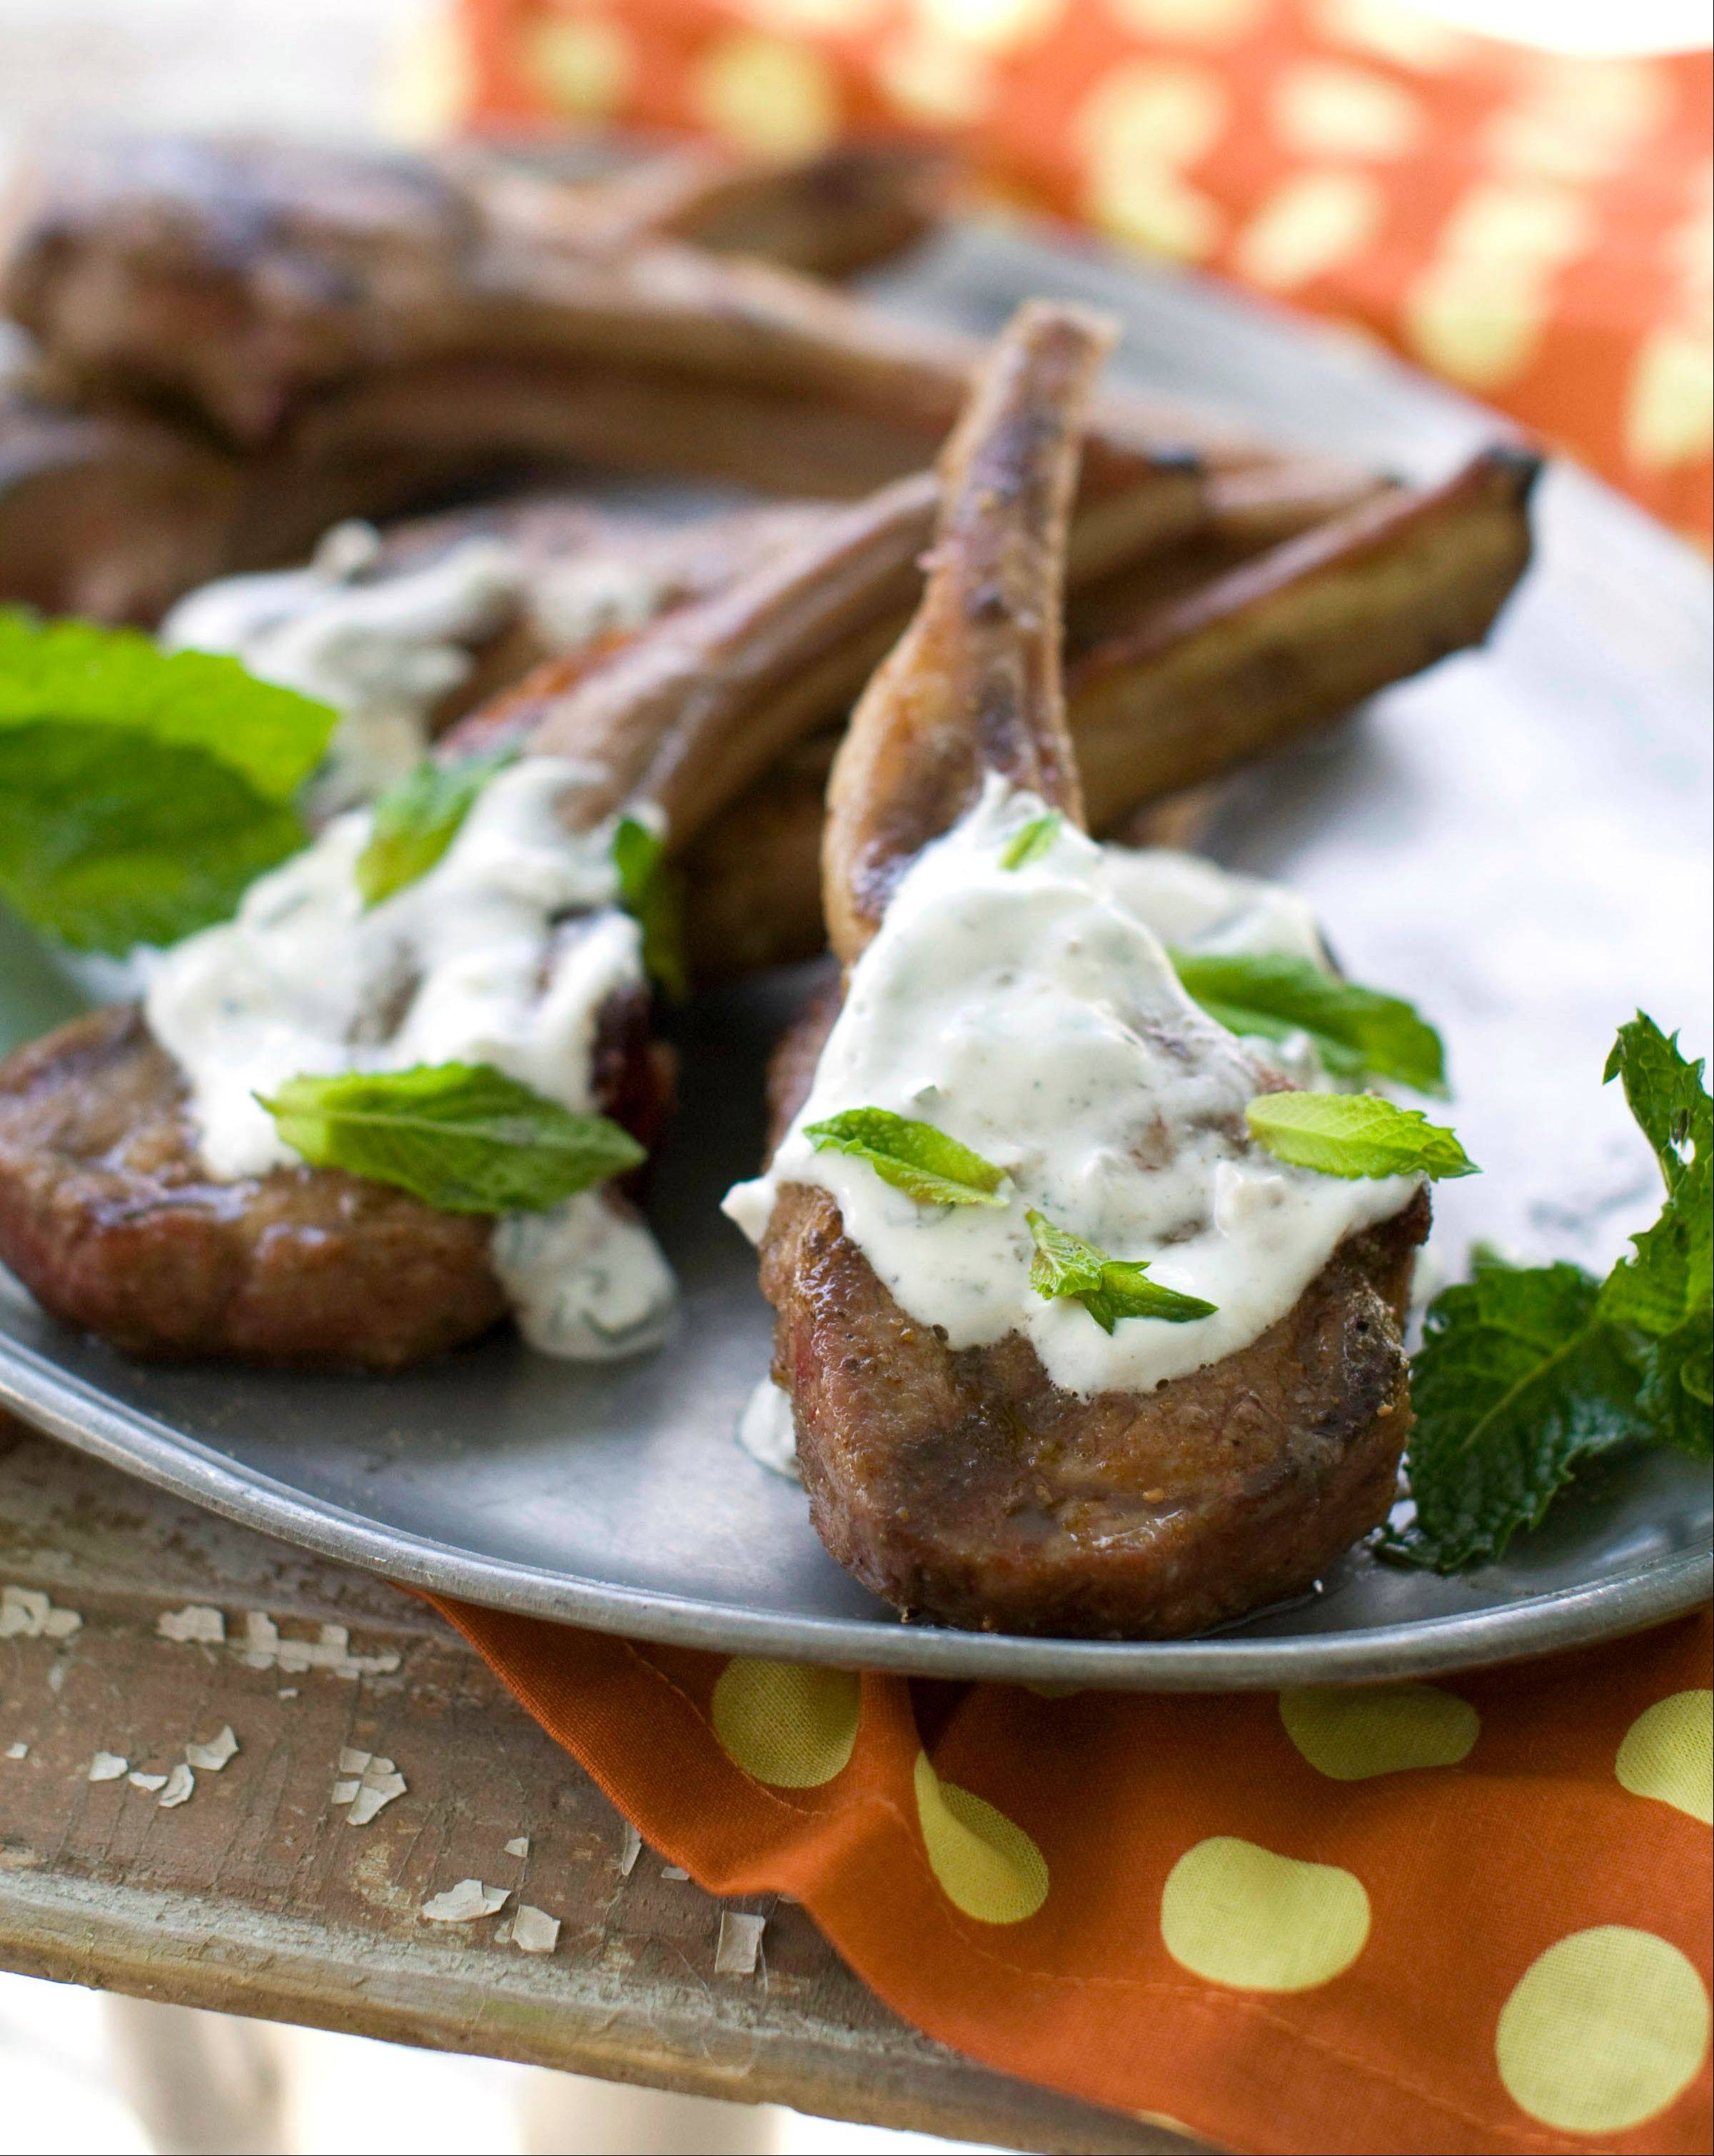 This recipe for Lamb with Mint Yogurt Sauce calls for stovetop cooking, but these chops could just as easily be tossed on the grill.